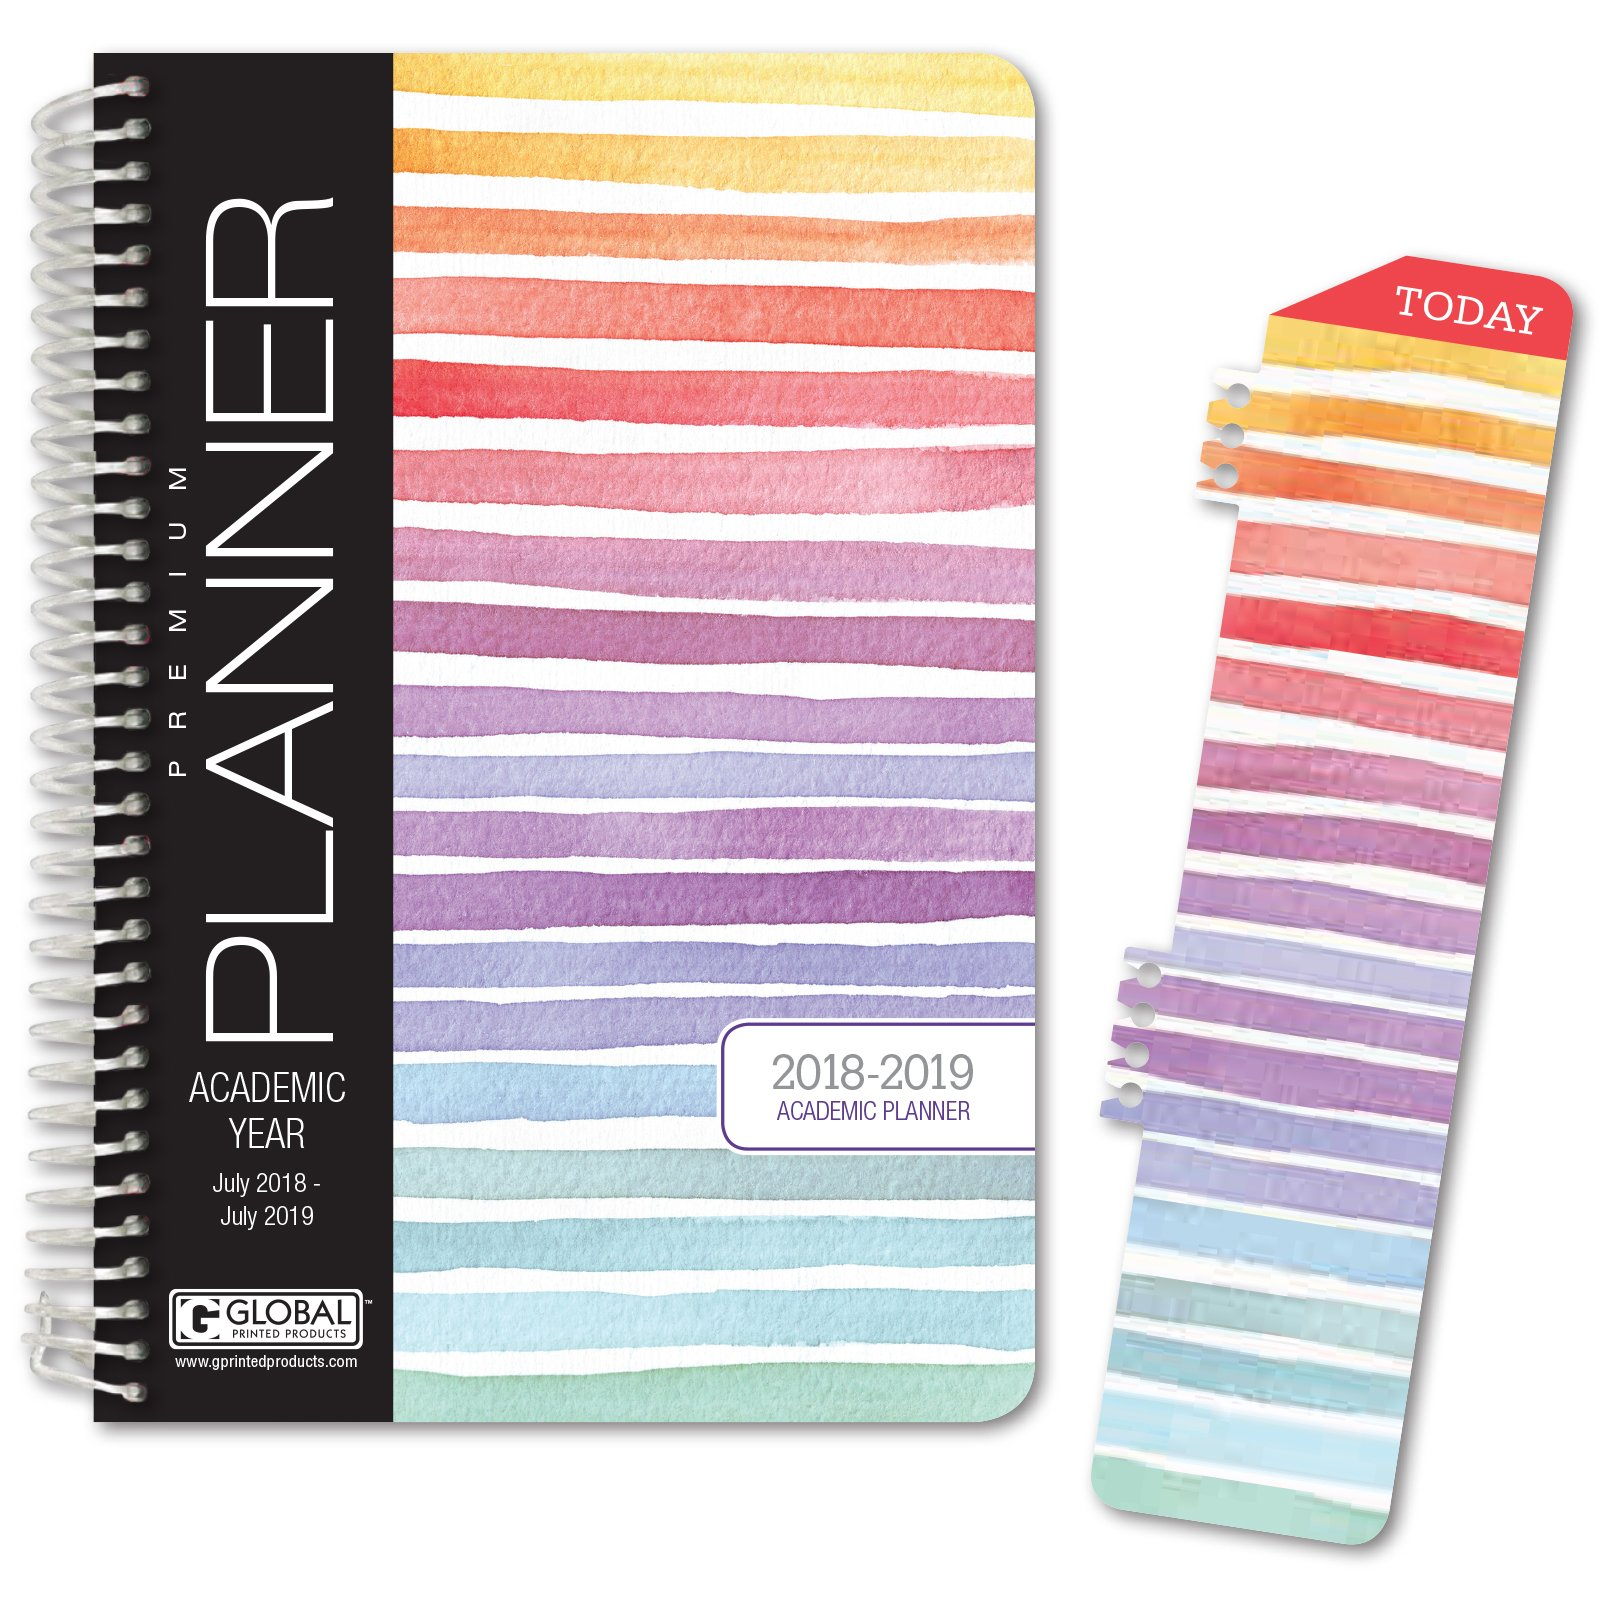 HARDCOVER Academic Year Planner 2018-2019 - 5.5''x8'' Daily Planner/ Weekly Planner / Monthly Planner / Yearly Agenda. Bonus BOOKMARK (Pastel Stripes)